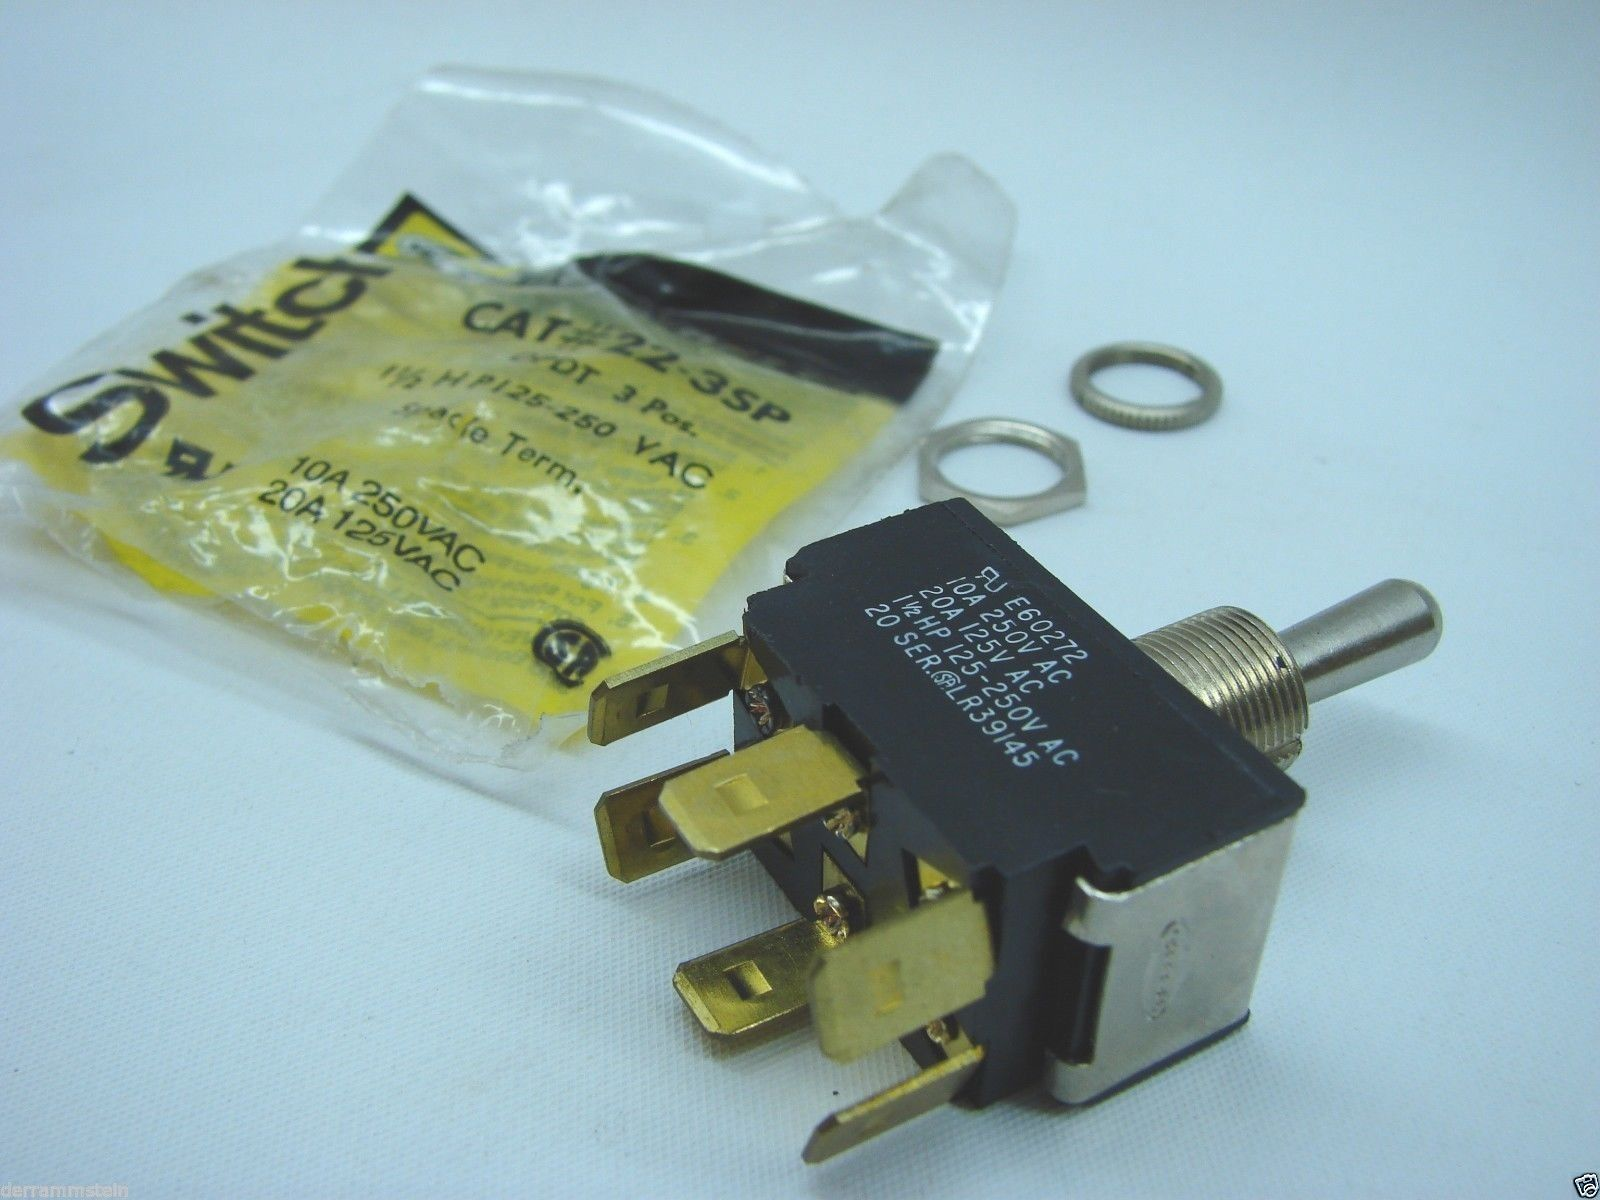 New Hubbell Wiring Devices Hbl223 Sp Switch and 50 similar items